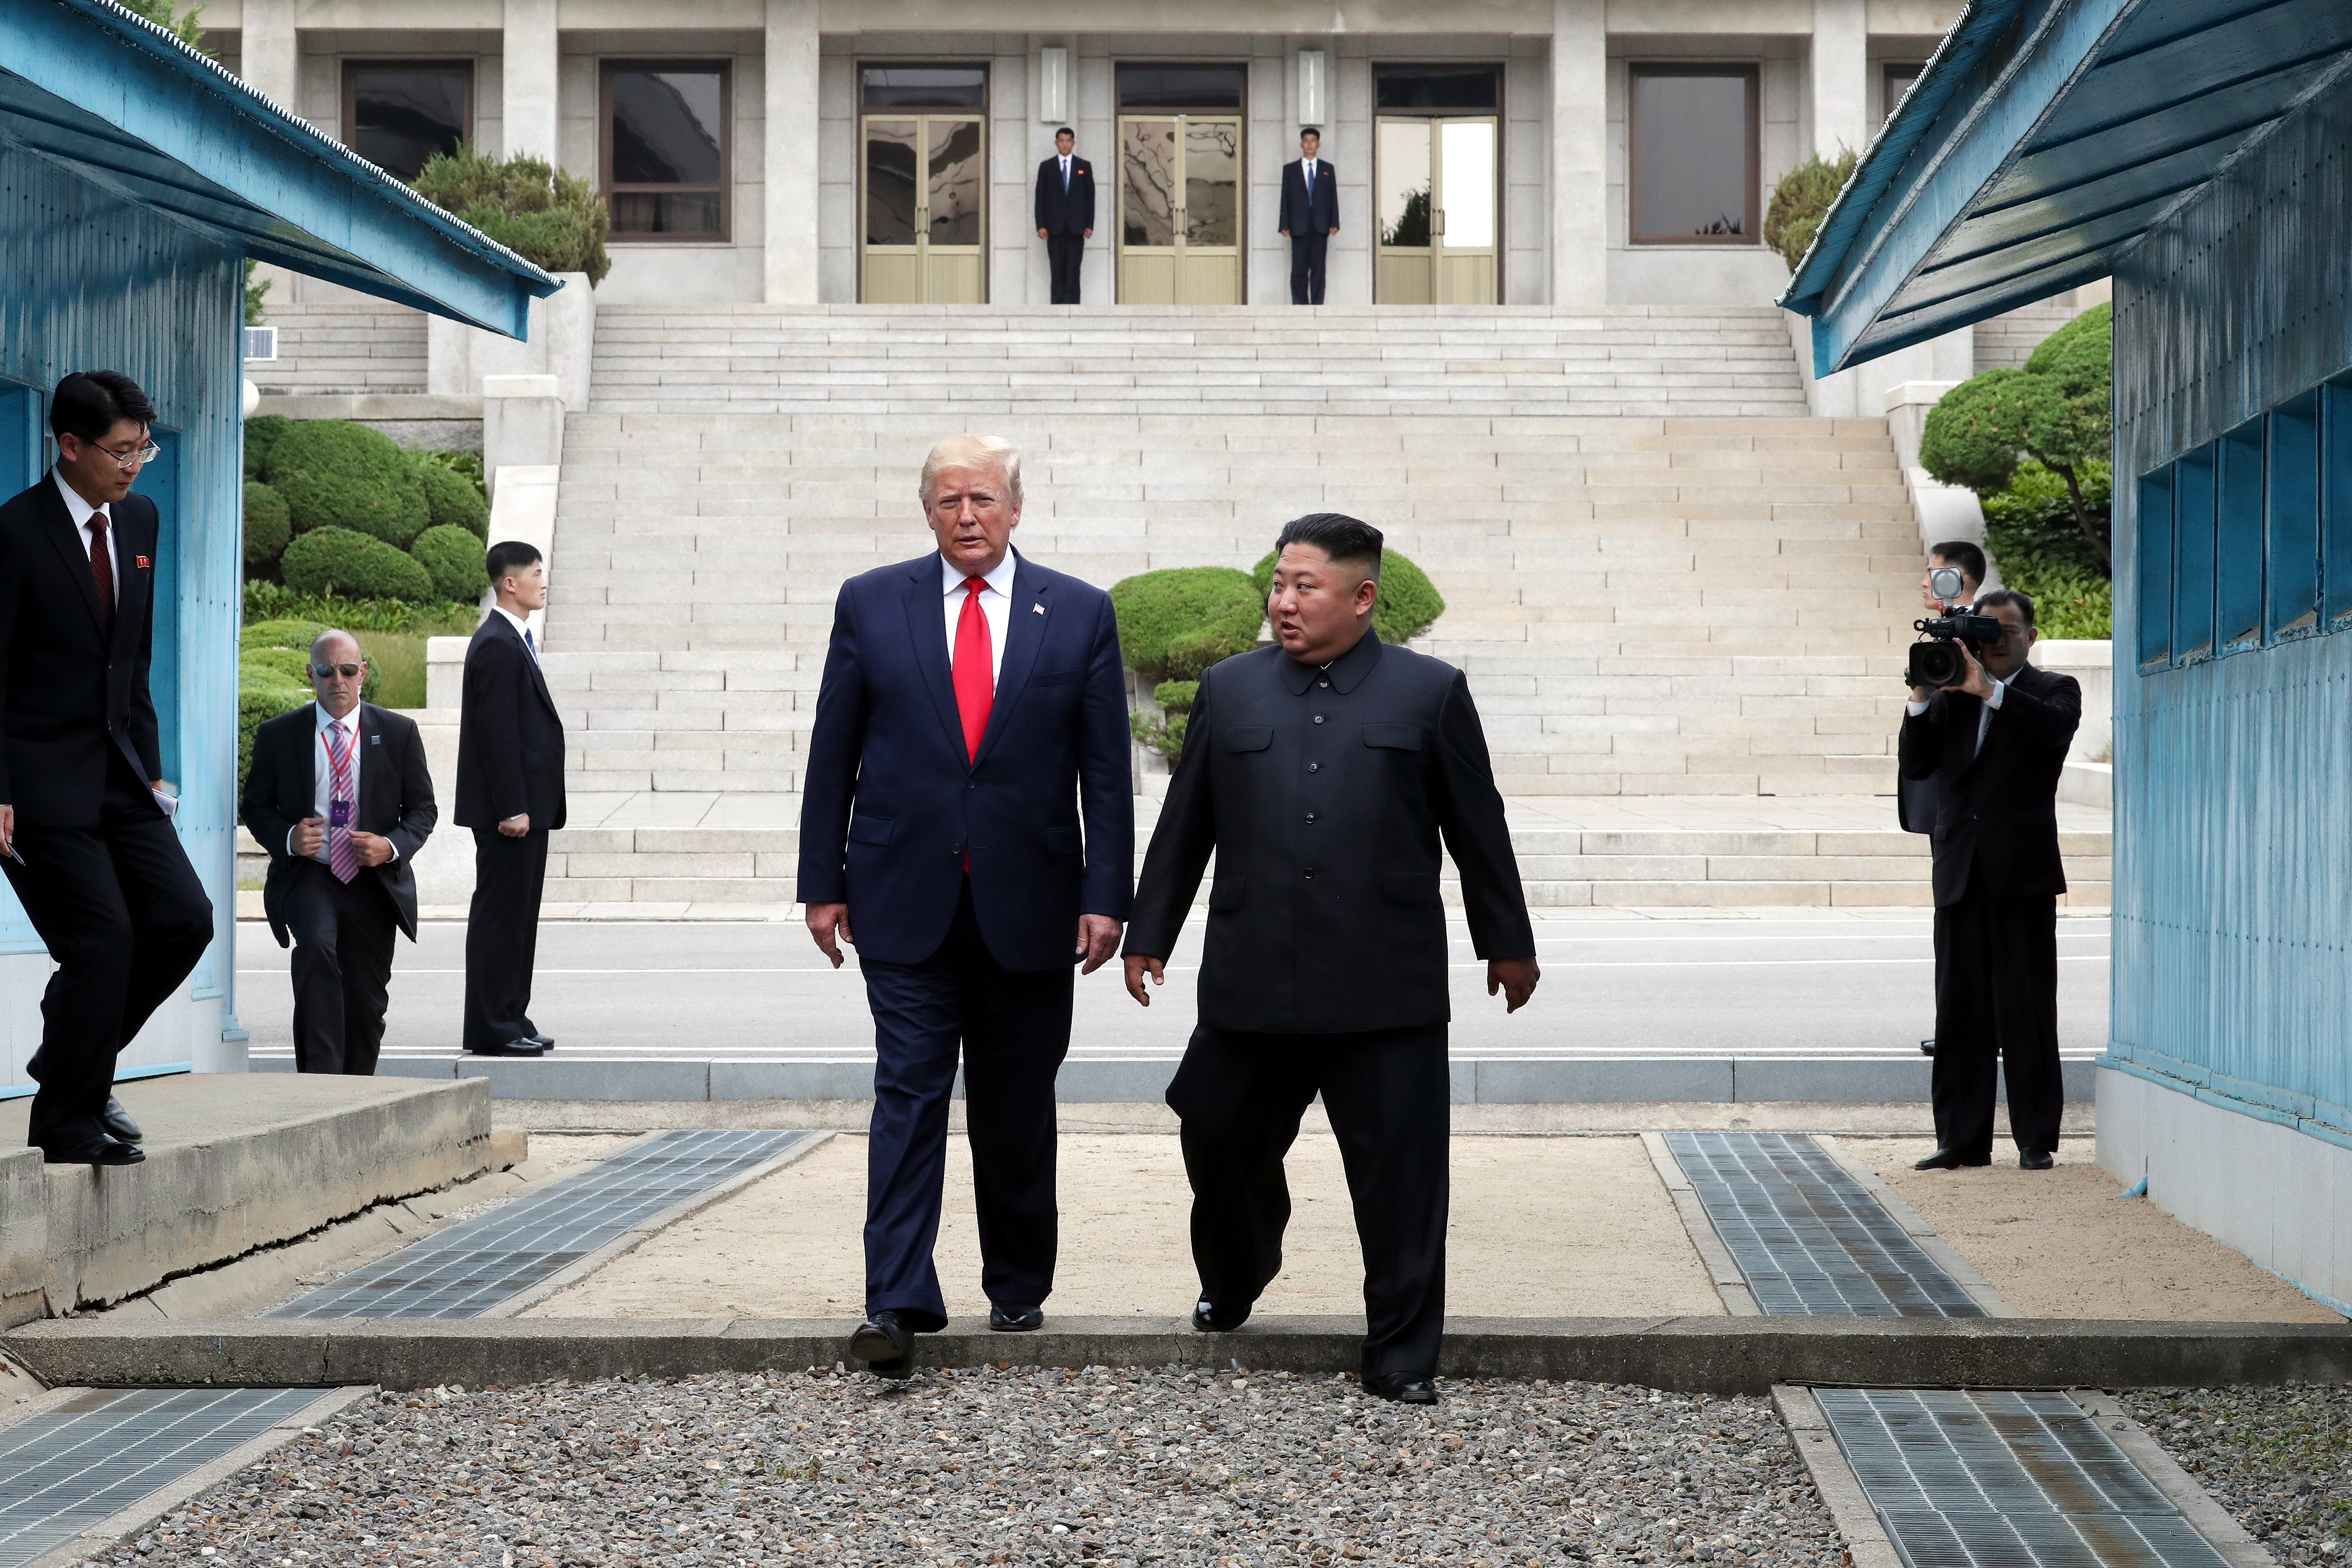 Donald Trump and Kim Jong-un at the Korean demilitarized zone | Photo: Getty Images